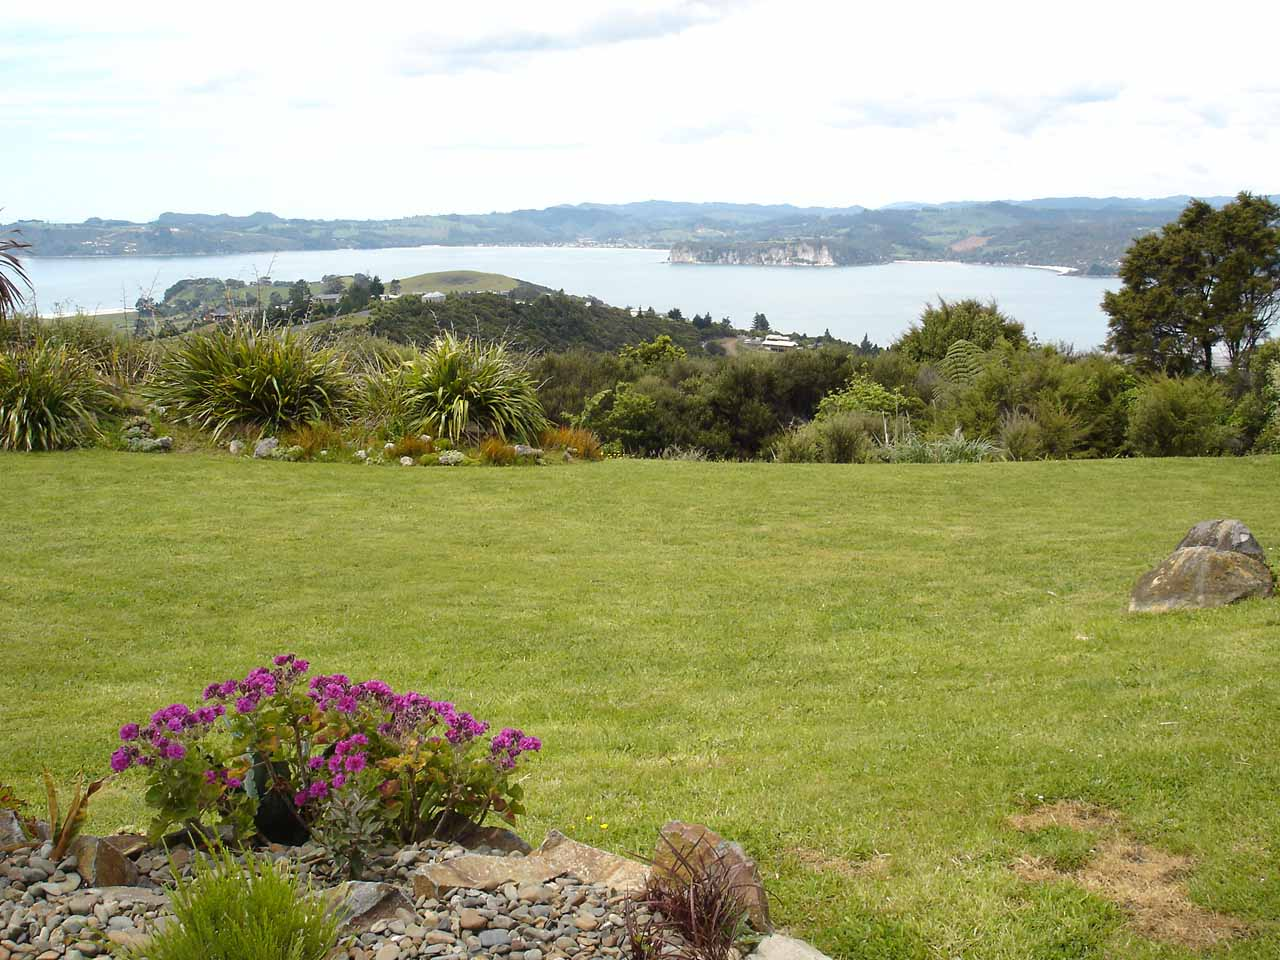 Looking over a lawn towards Mercury Bay